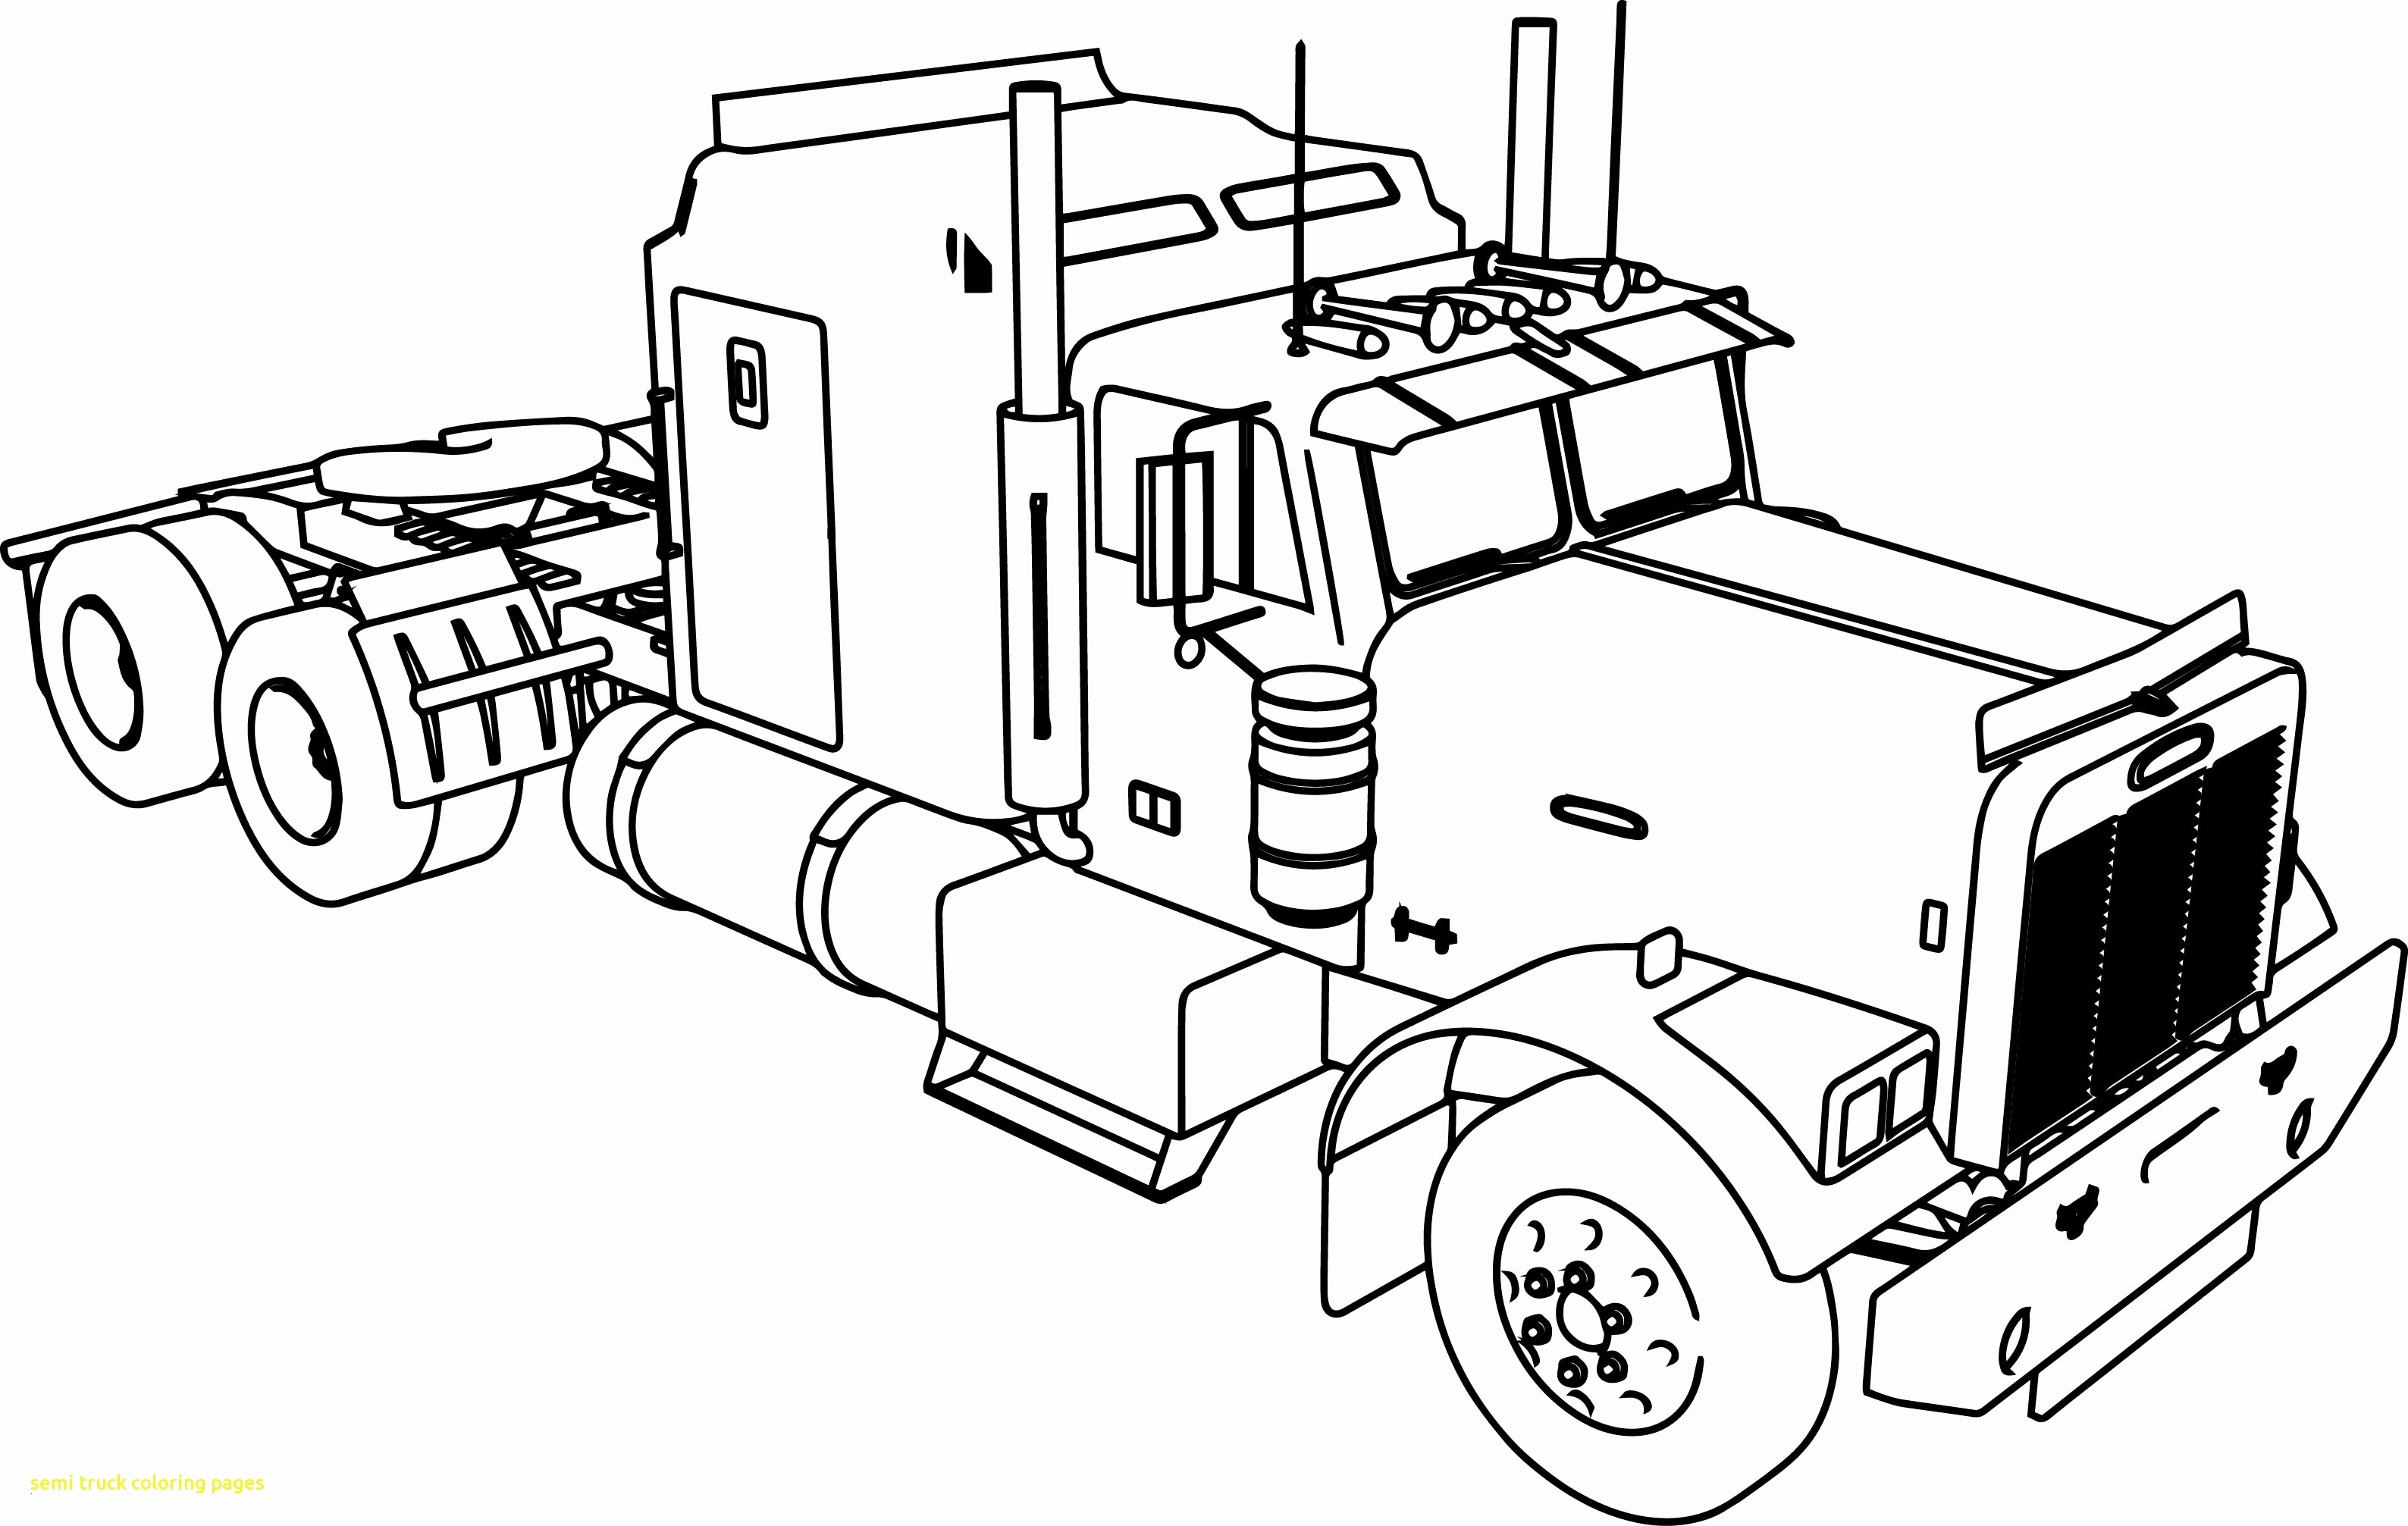 Truck and Trailer Coloring Pages  Collection 16p - To print for your project